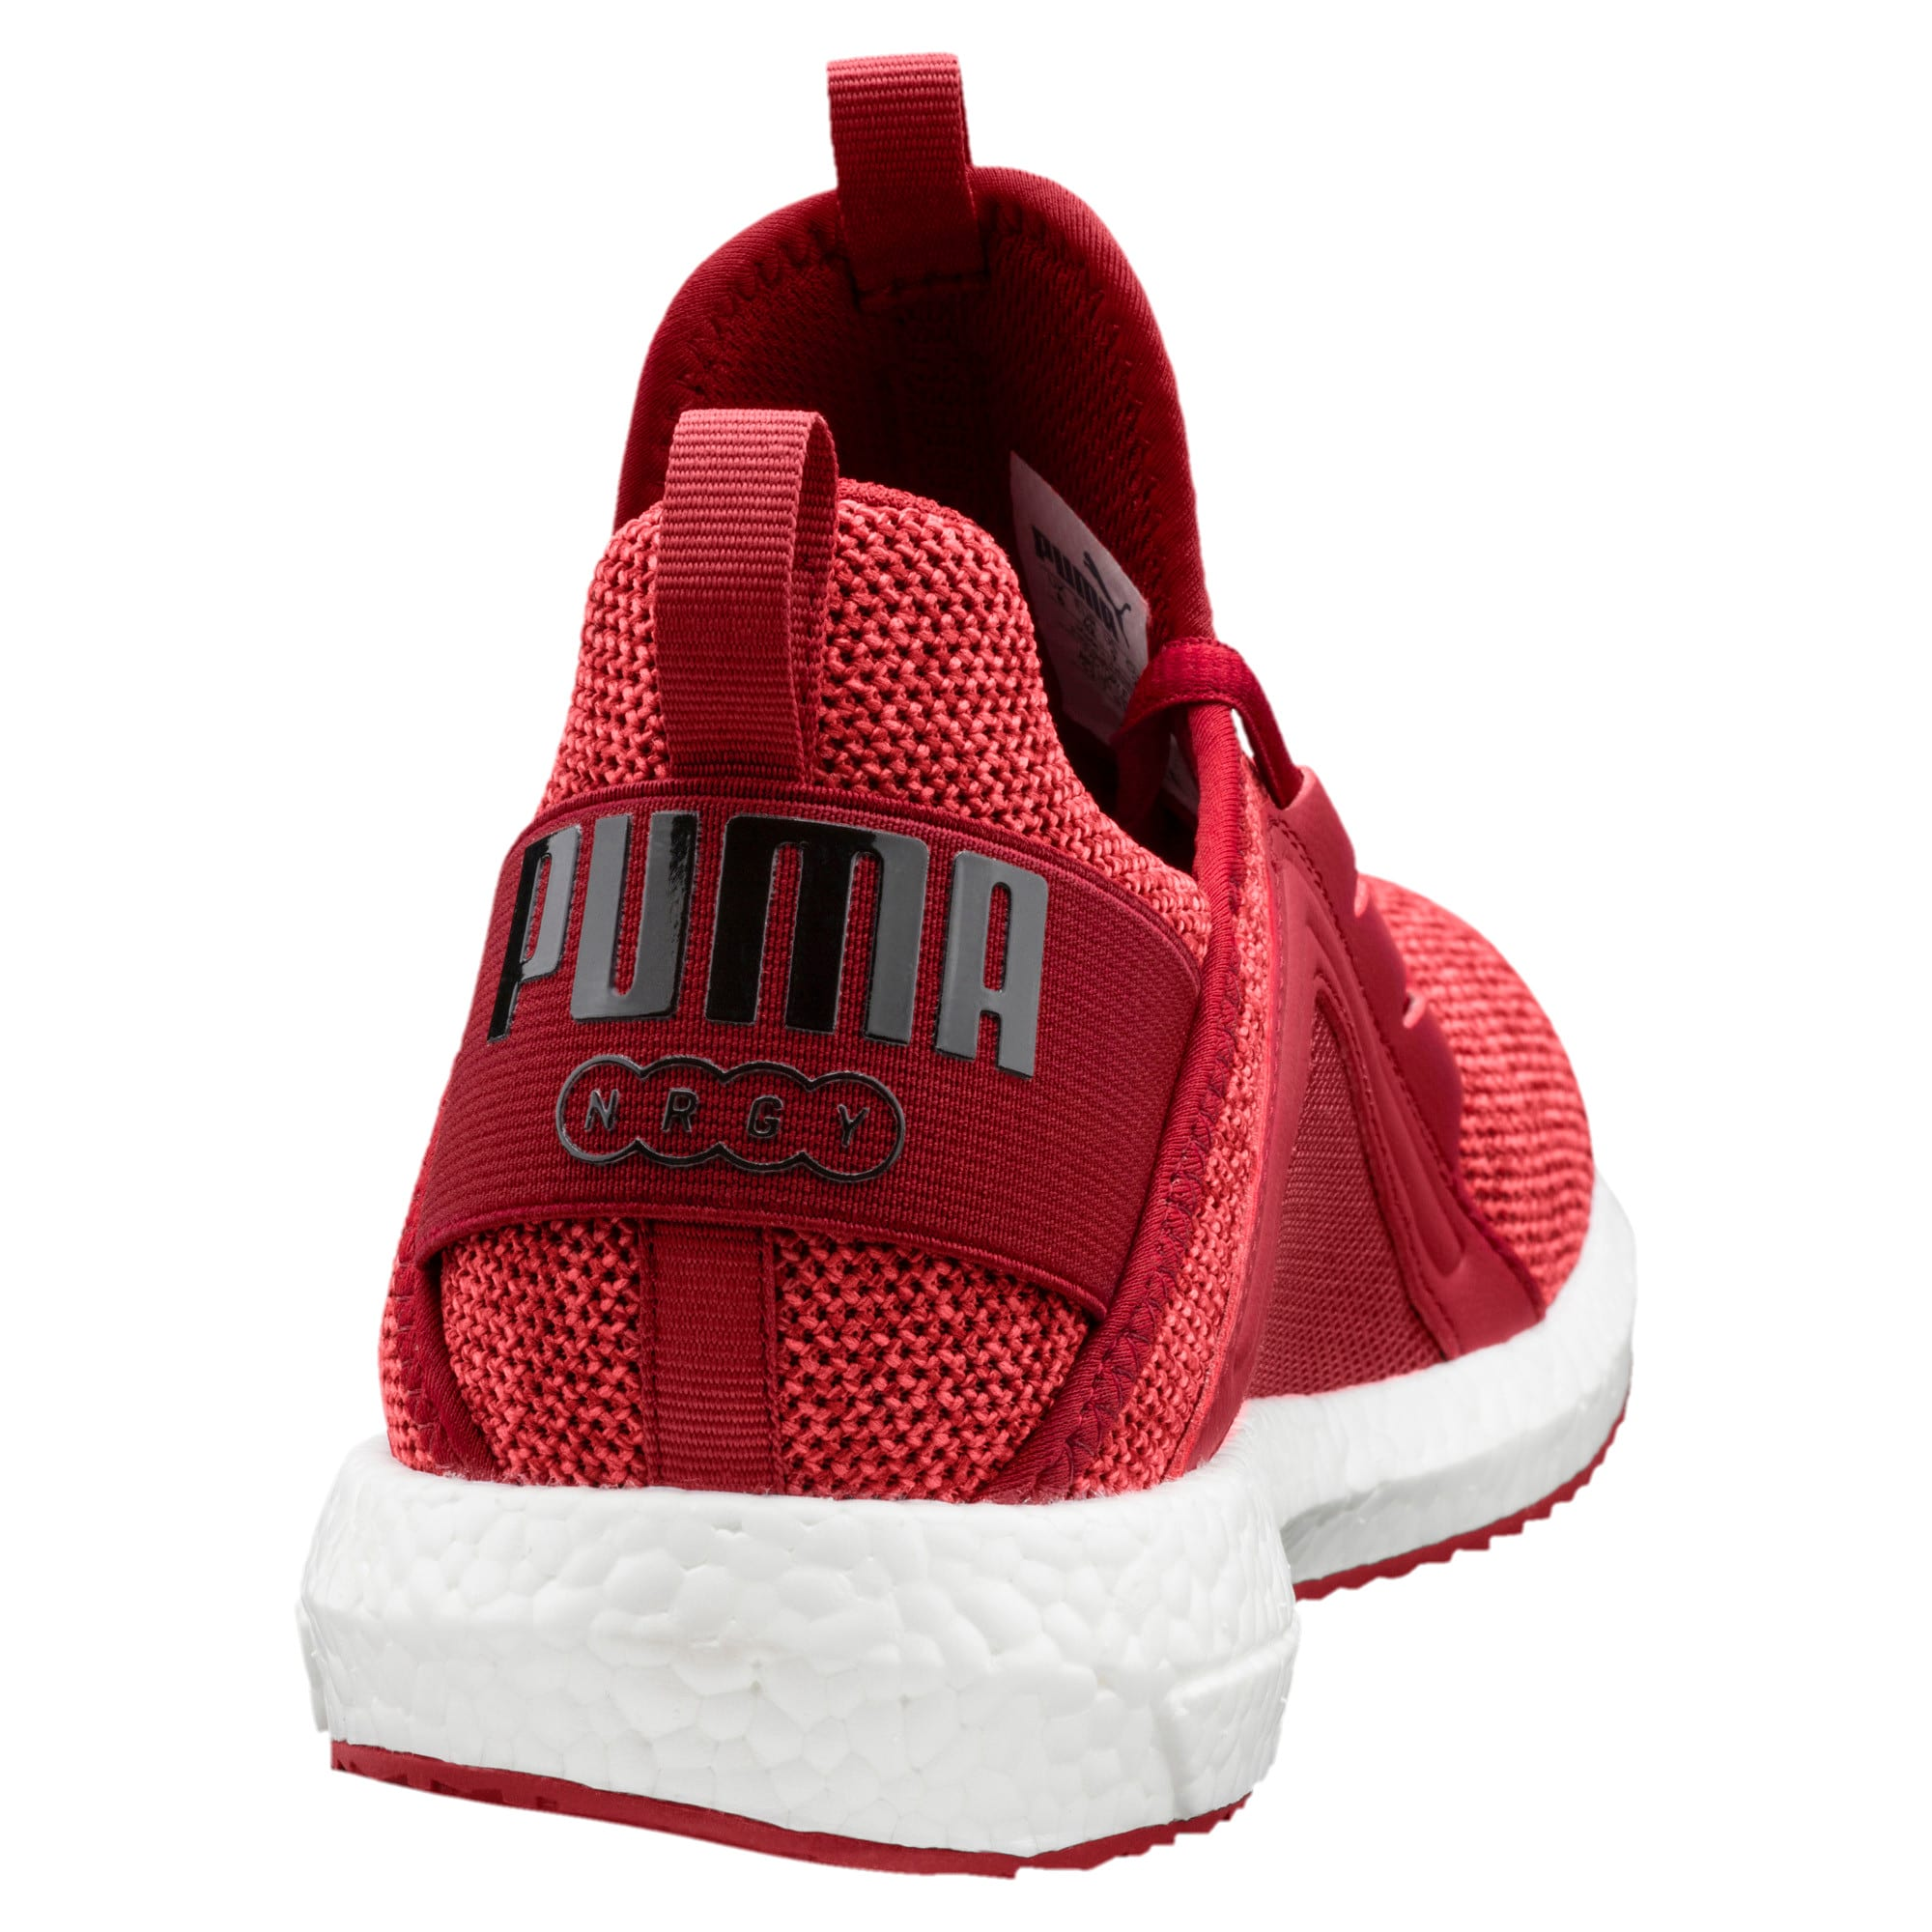 Thumbnail 4 of Mega NRGY Knit Men's Running Shoes, Red Dahlia-Flame Scarlet-Blk, medium